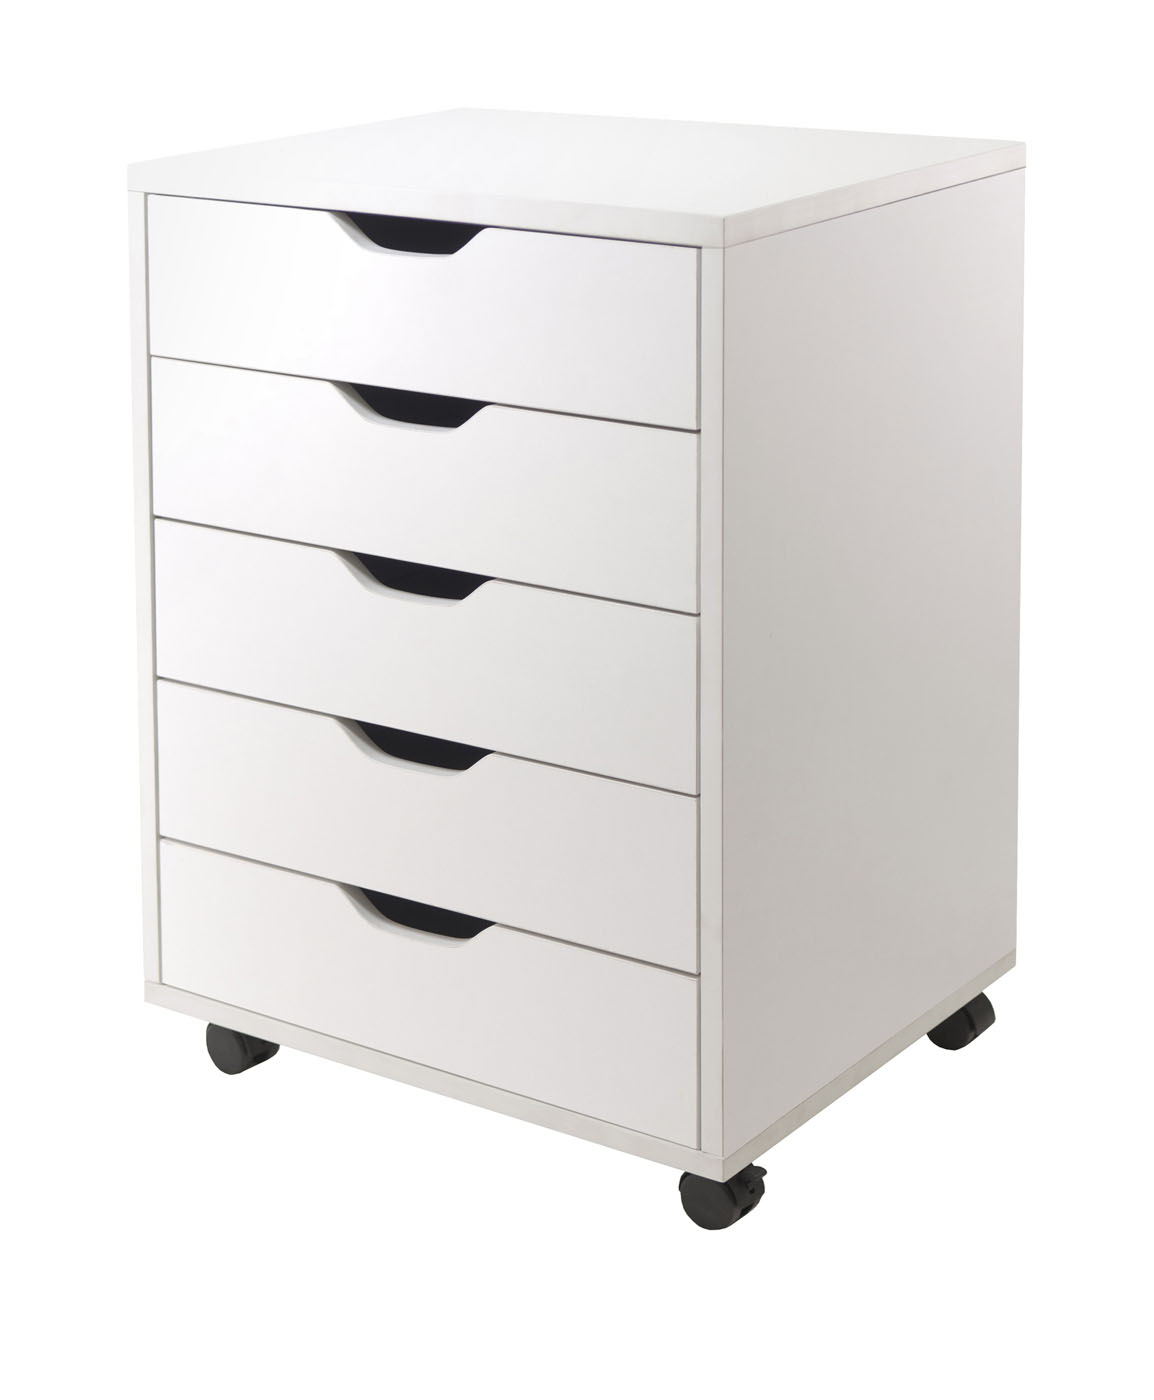 winsome halifax wooden storage cabinet for closet office